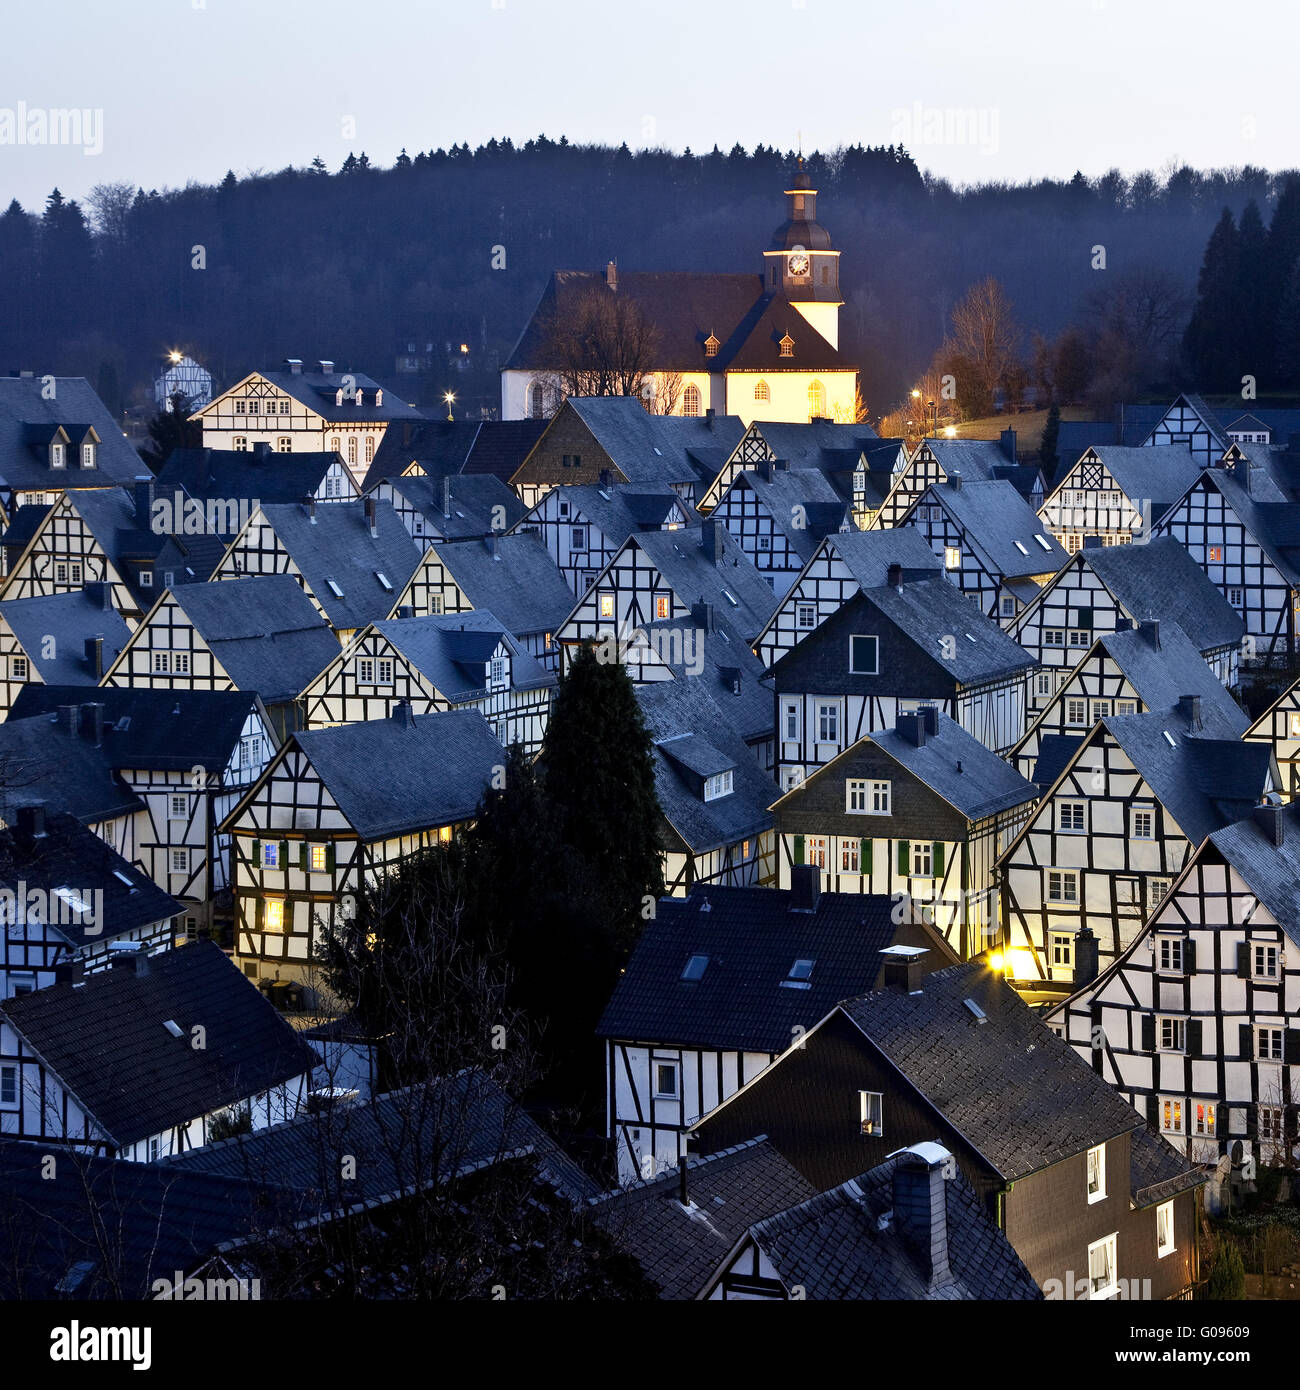 Old town with half-timbered houses in Freudenberg. Stock Photo